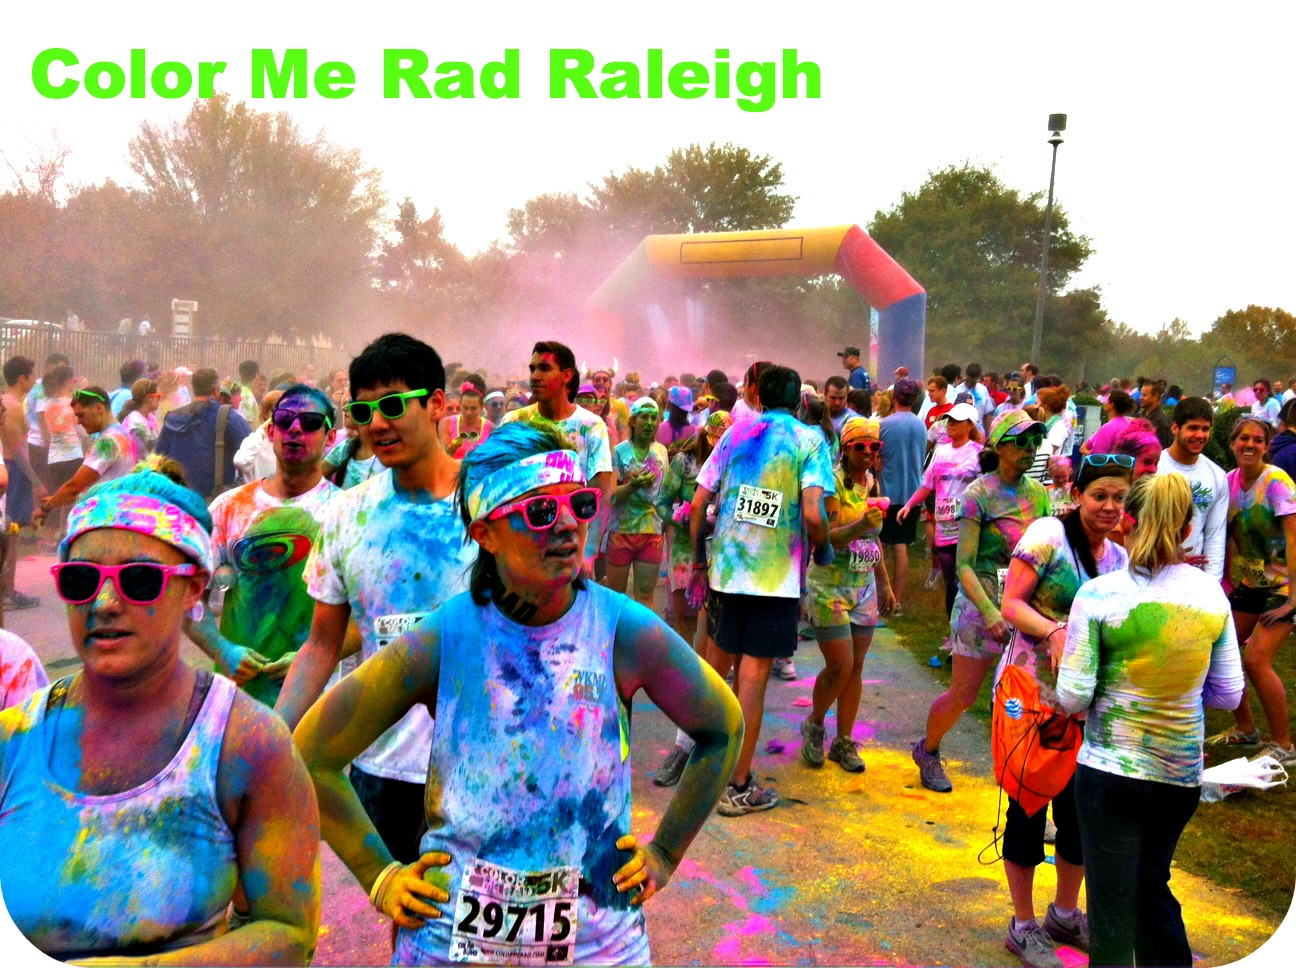 colormeradraleigh Color Me Rad 5K, Cool Ideas For The Messiest Race Going